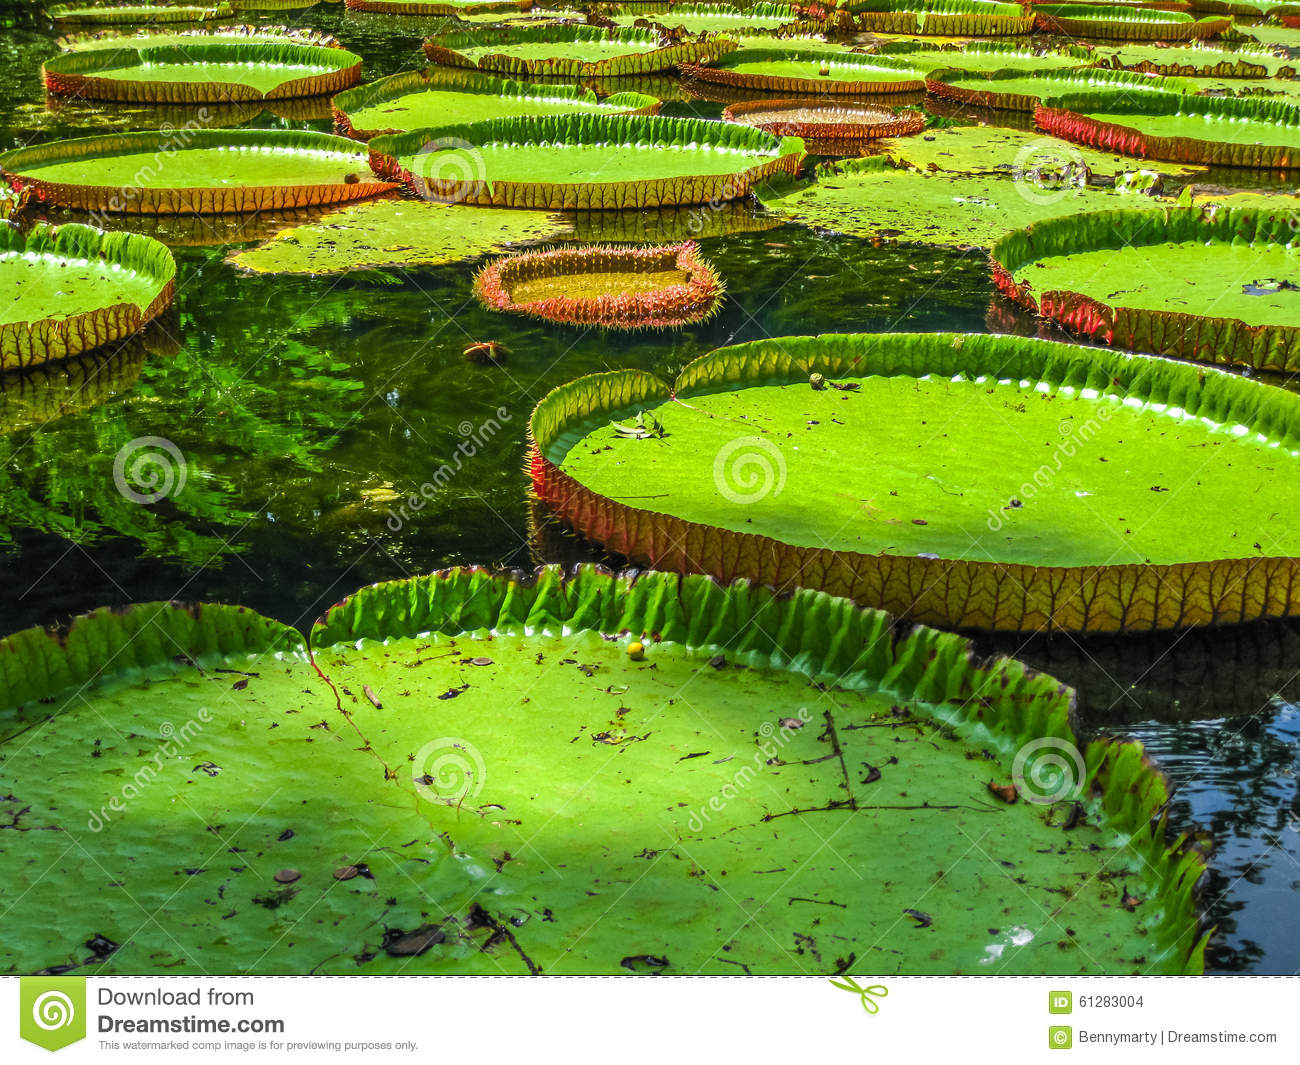 Pamplemousses mauritius stock photo image 61283004 for What time does the botanical gardens close